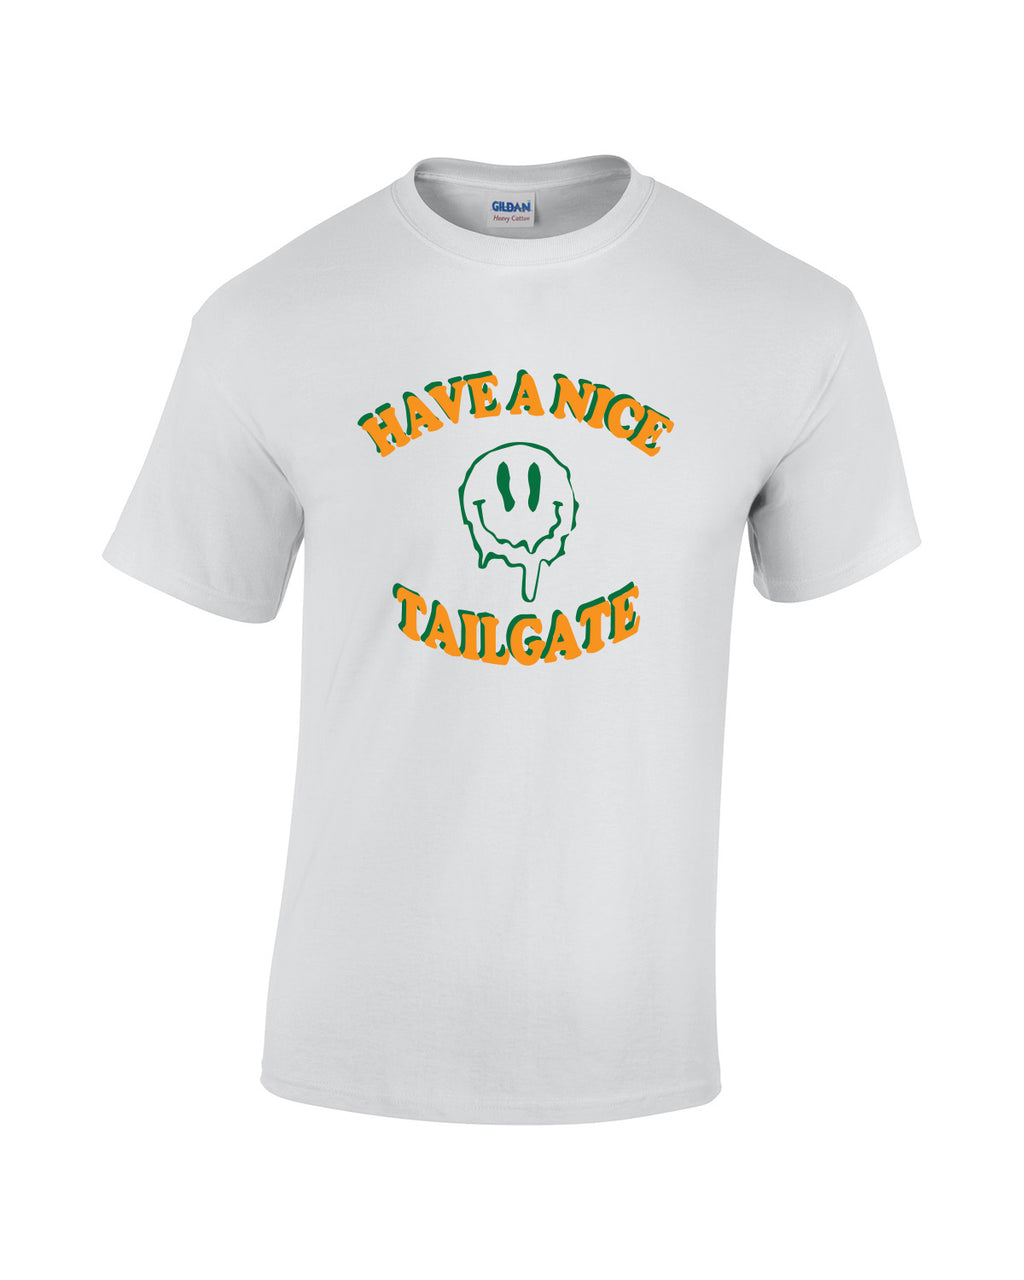 Have a Nice Tailgate Tee